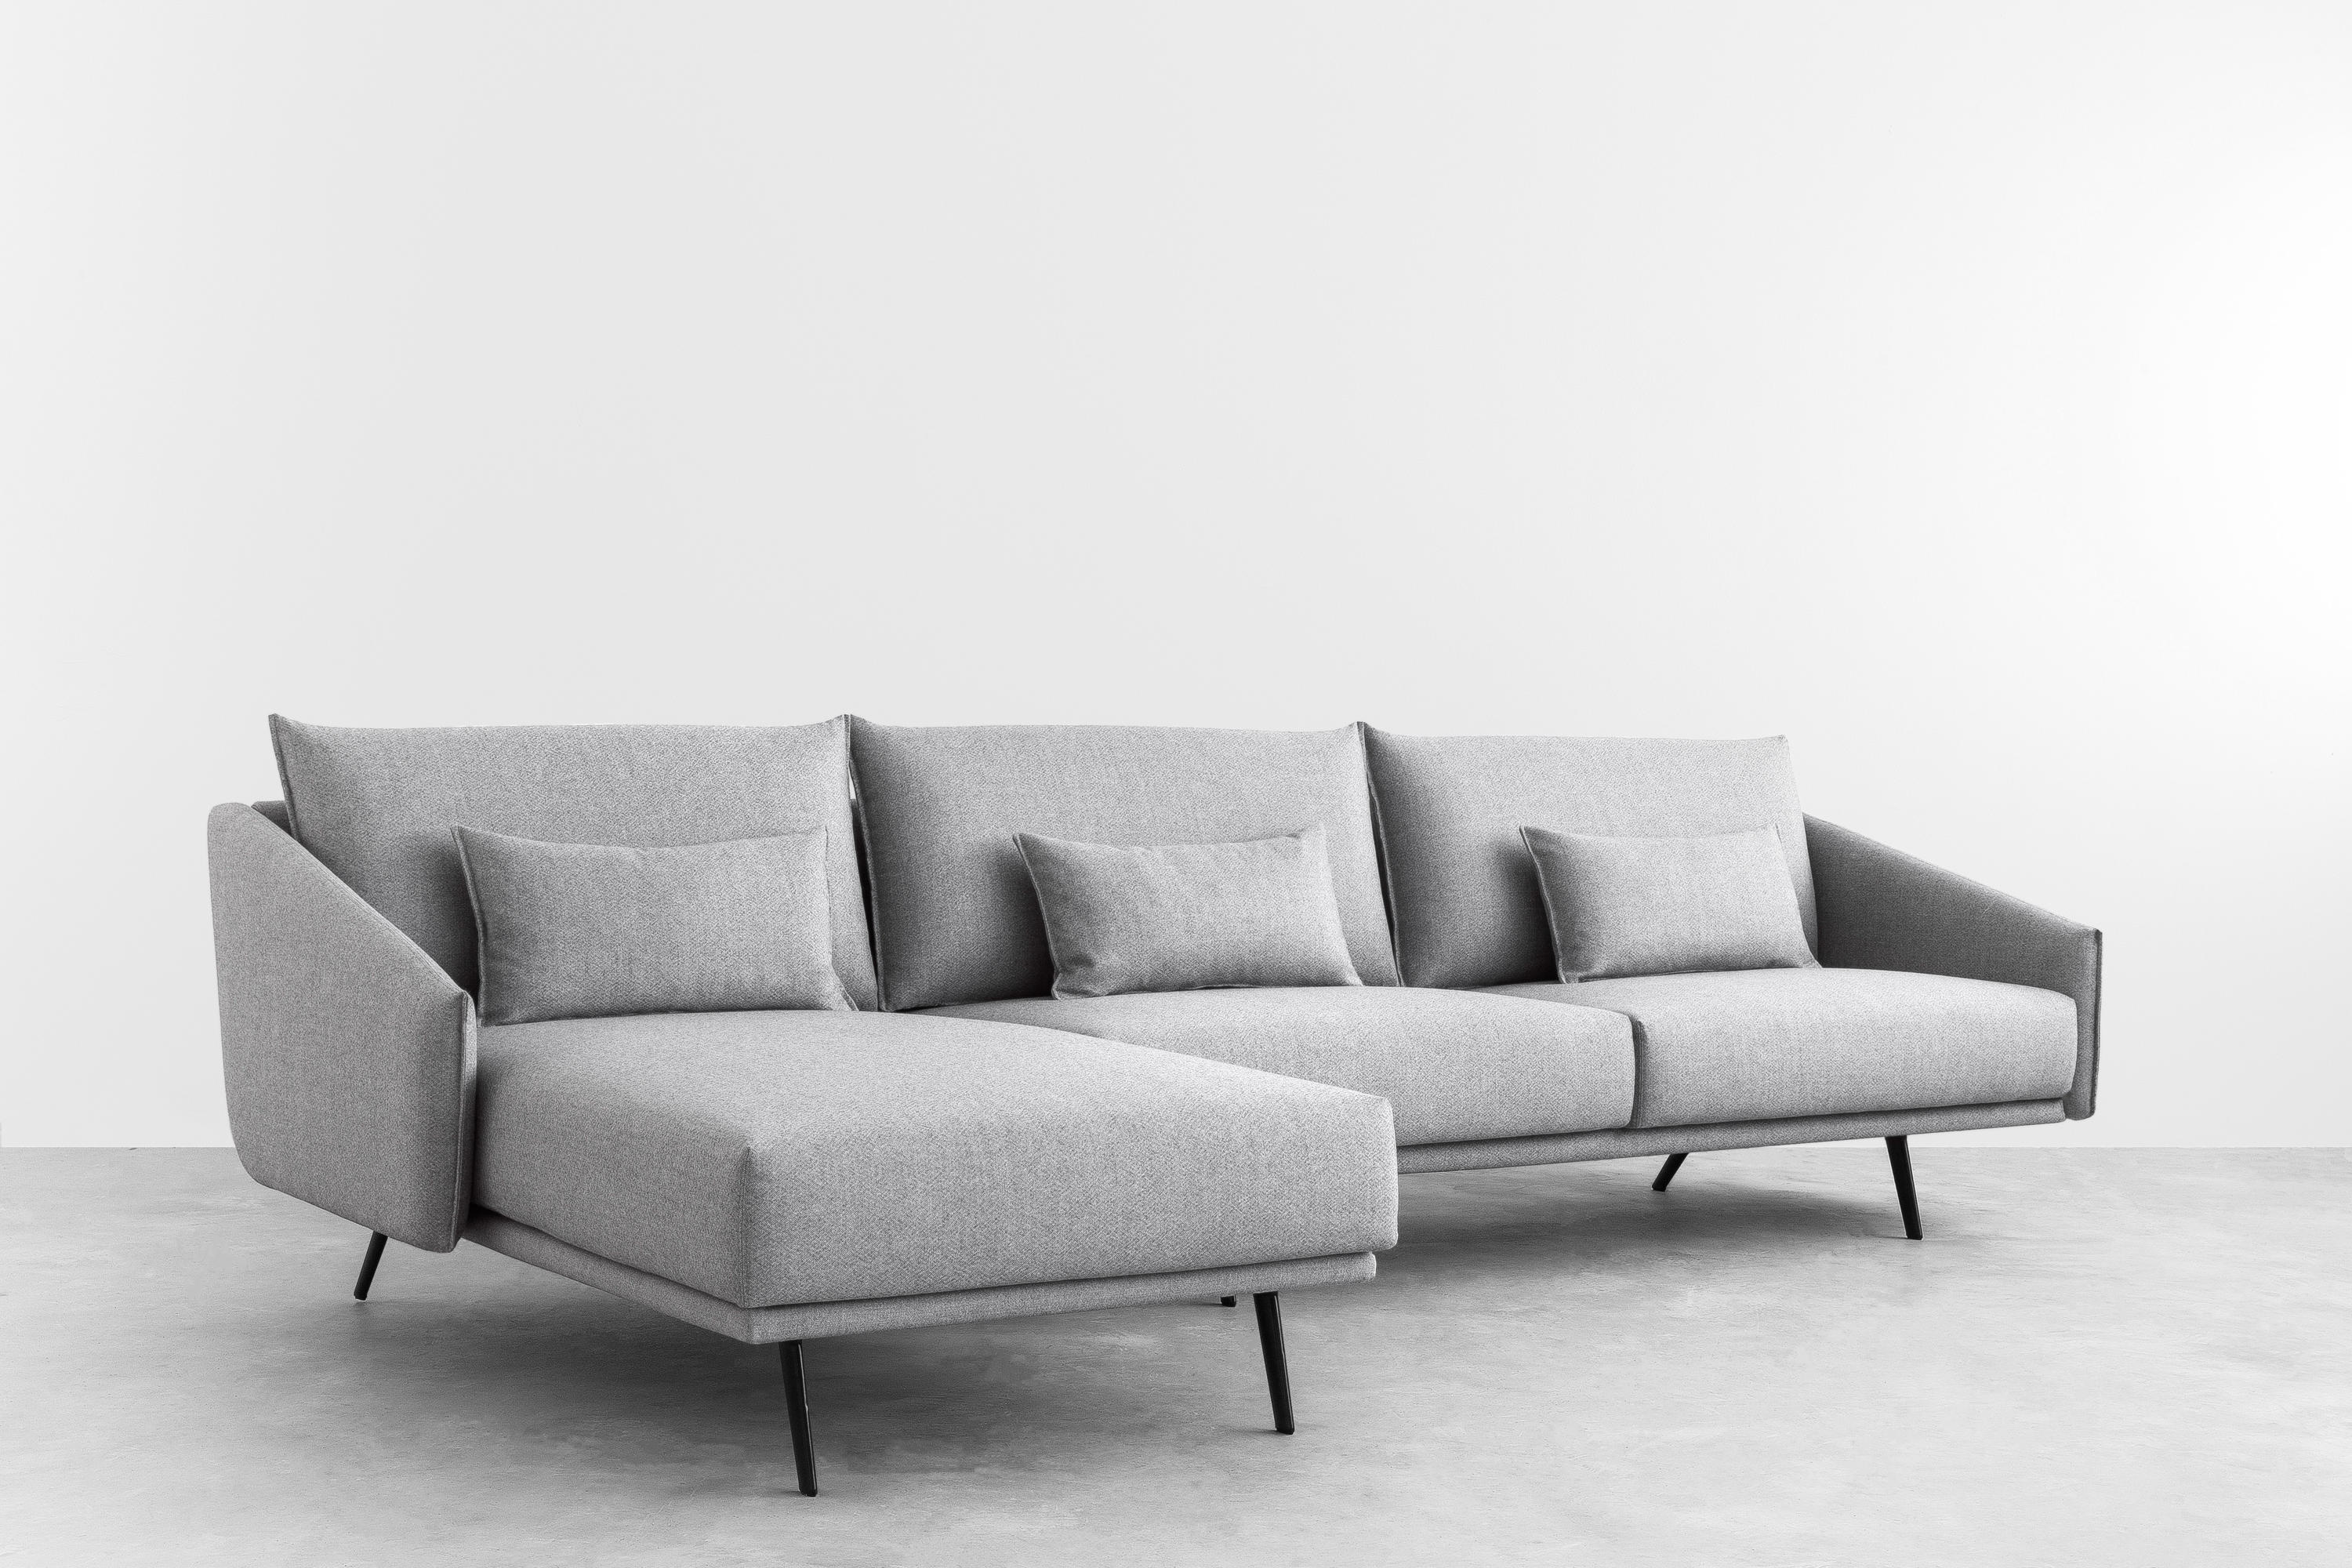 costura sofa lounge sofas from stua architonic. Black Bedroom Furniture Sets. Home Design Ideas